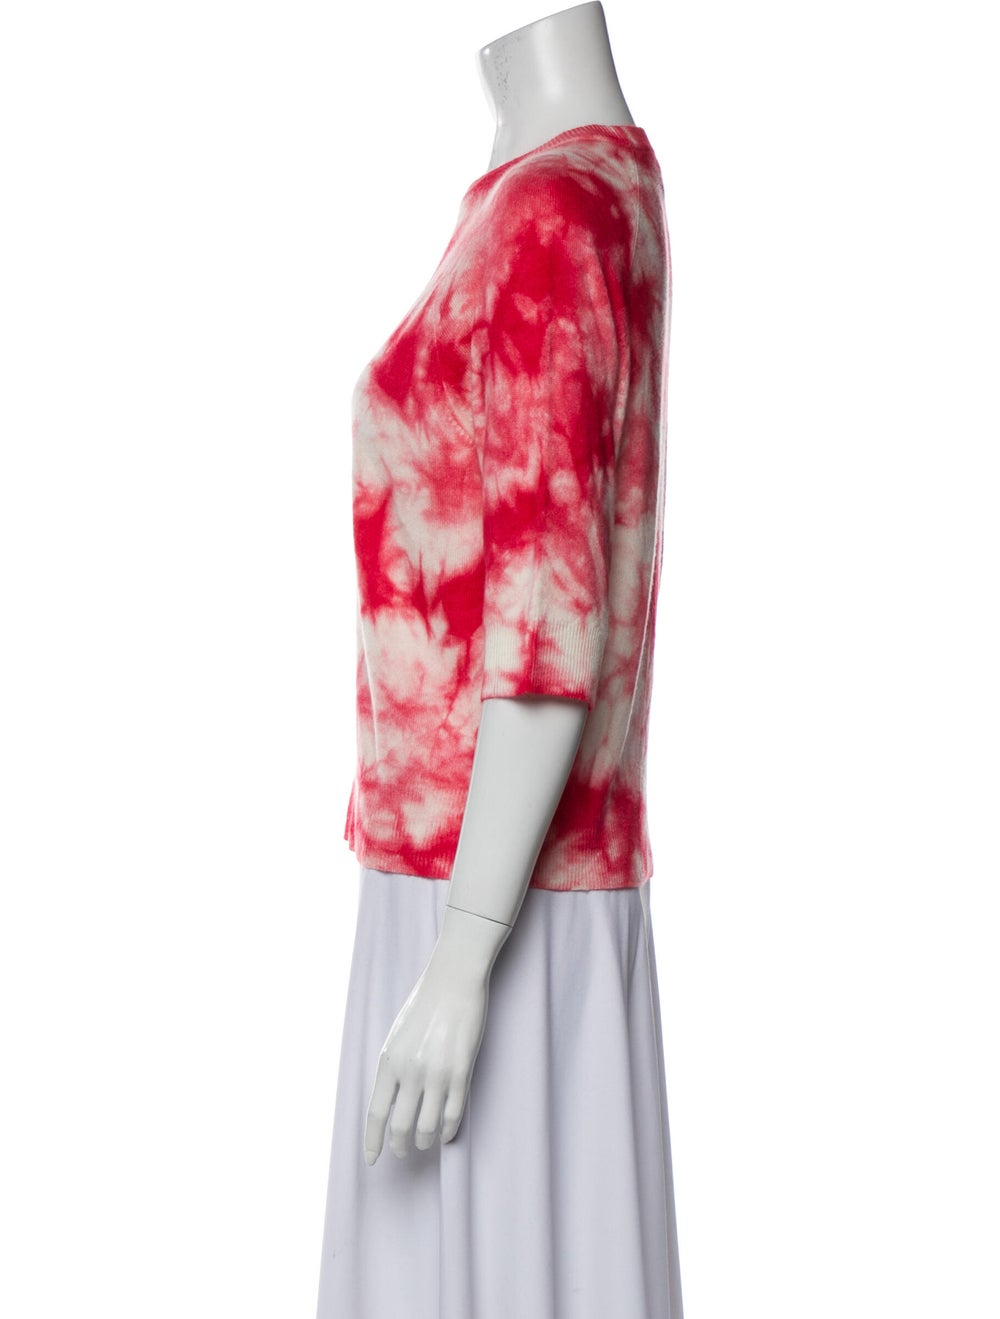 Michael Kors Cashmere Tie-Dye Print Sweater Red - image 2